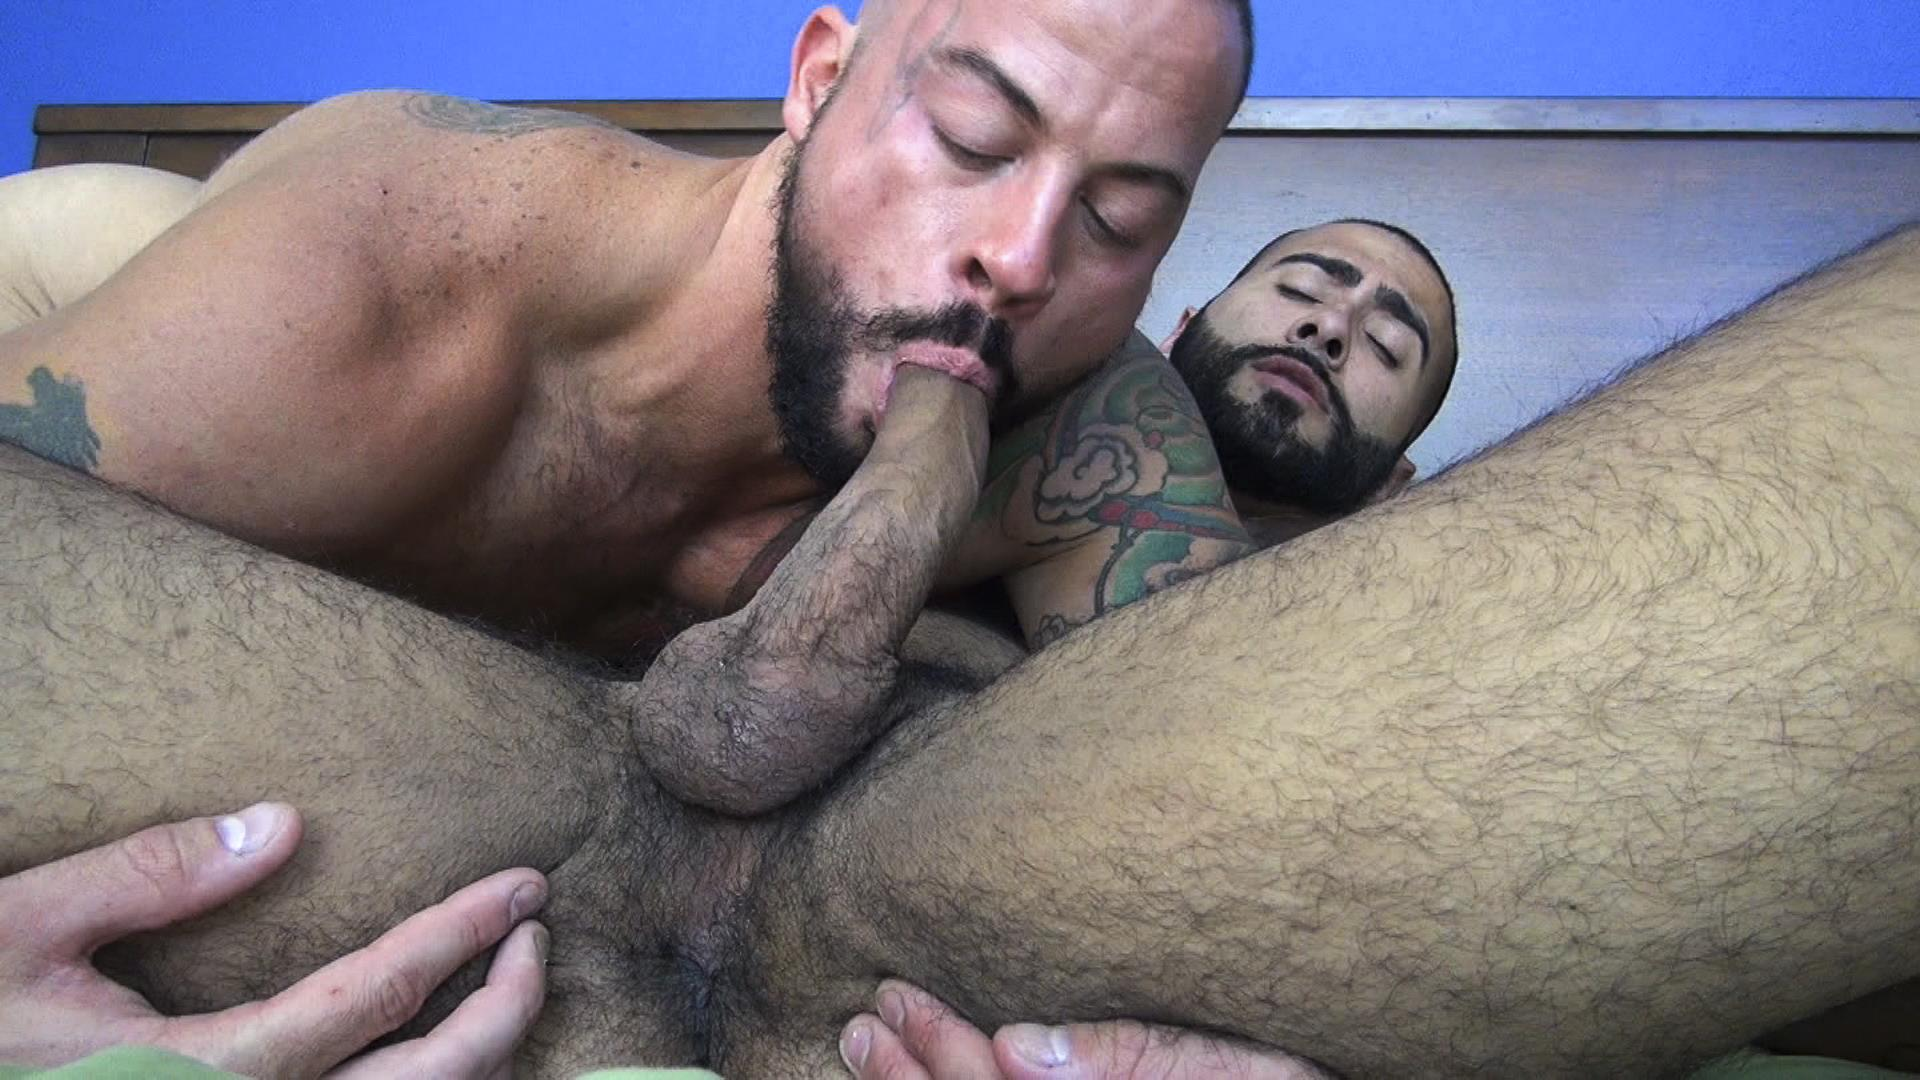 Raw Fuck Club Rikk York and Sean Duran Hairy Muscle Bareback Amateur Gay Porn 3 Hairy Muscle Studs & Real Life Boyfriends Sean Duran & Rikk York Bareback